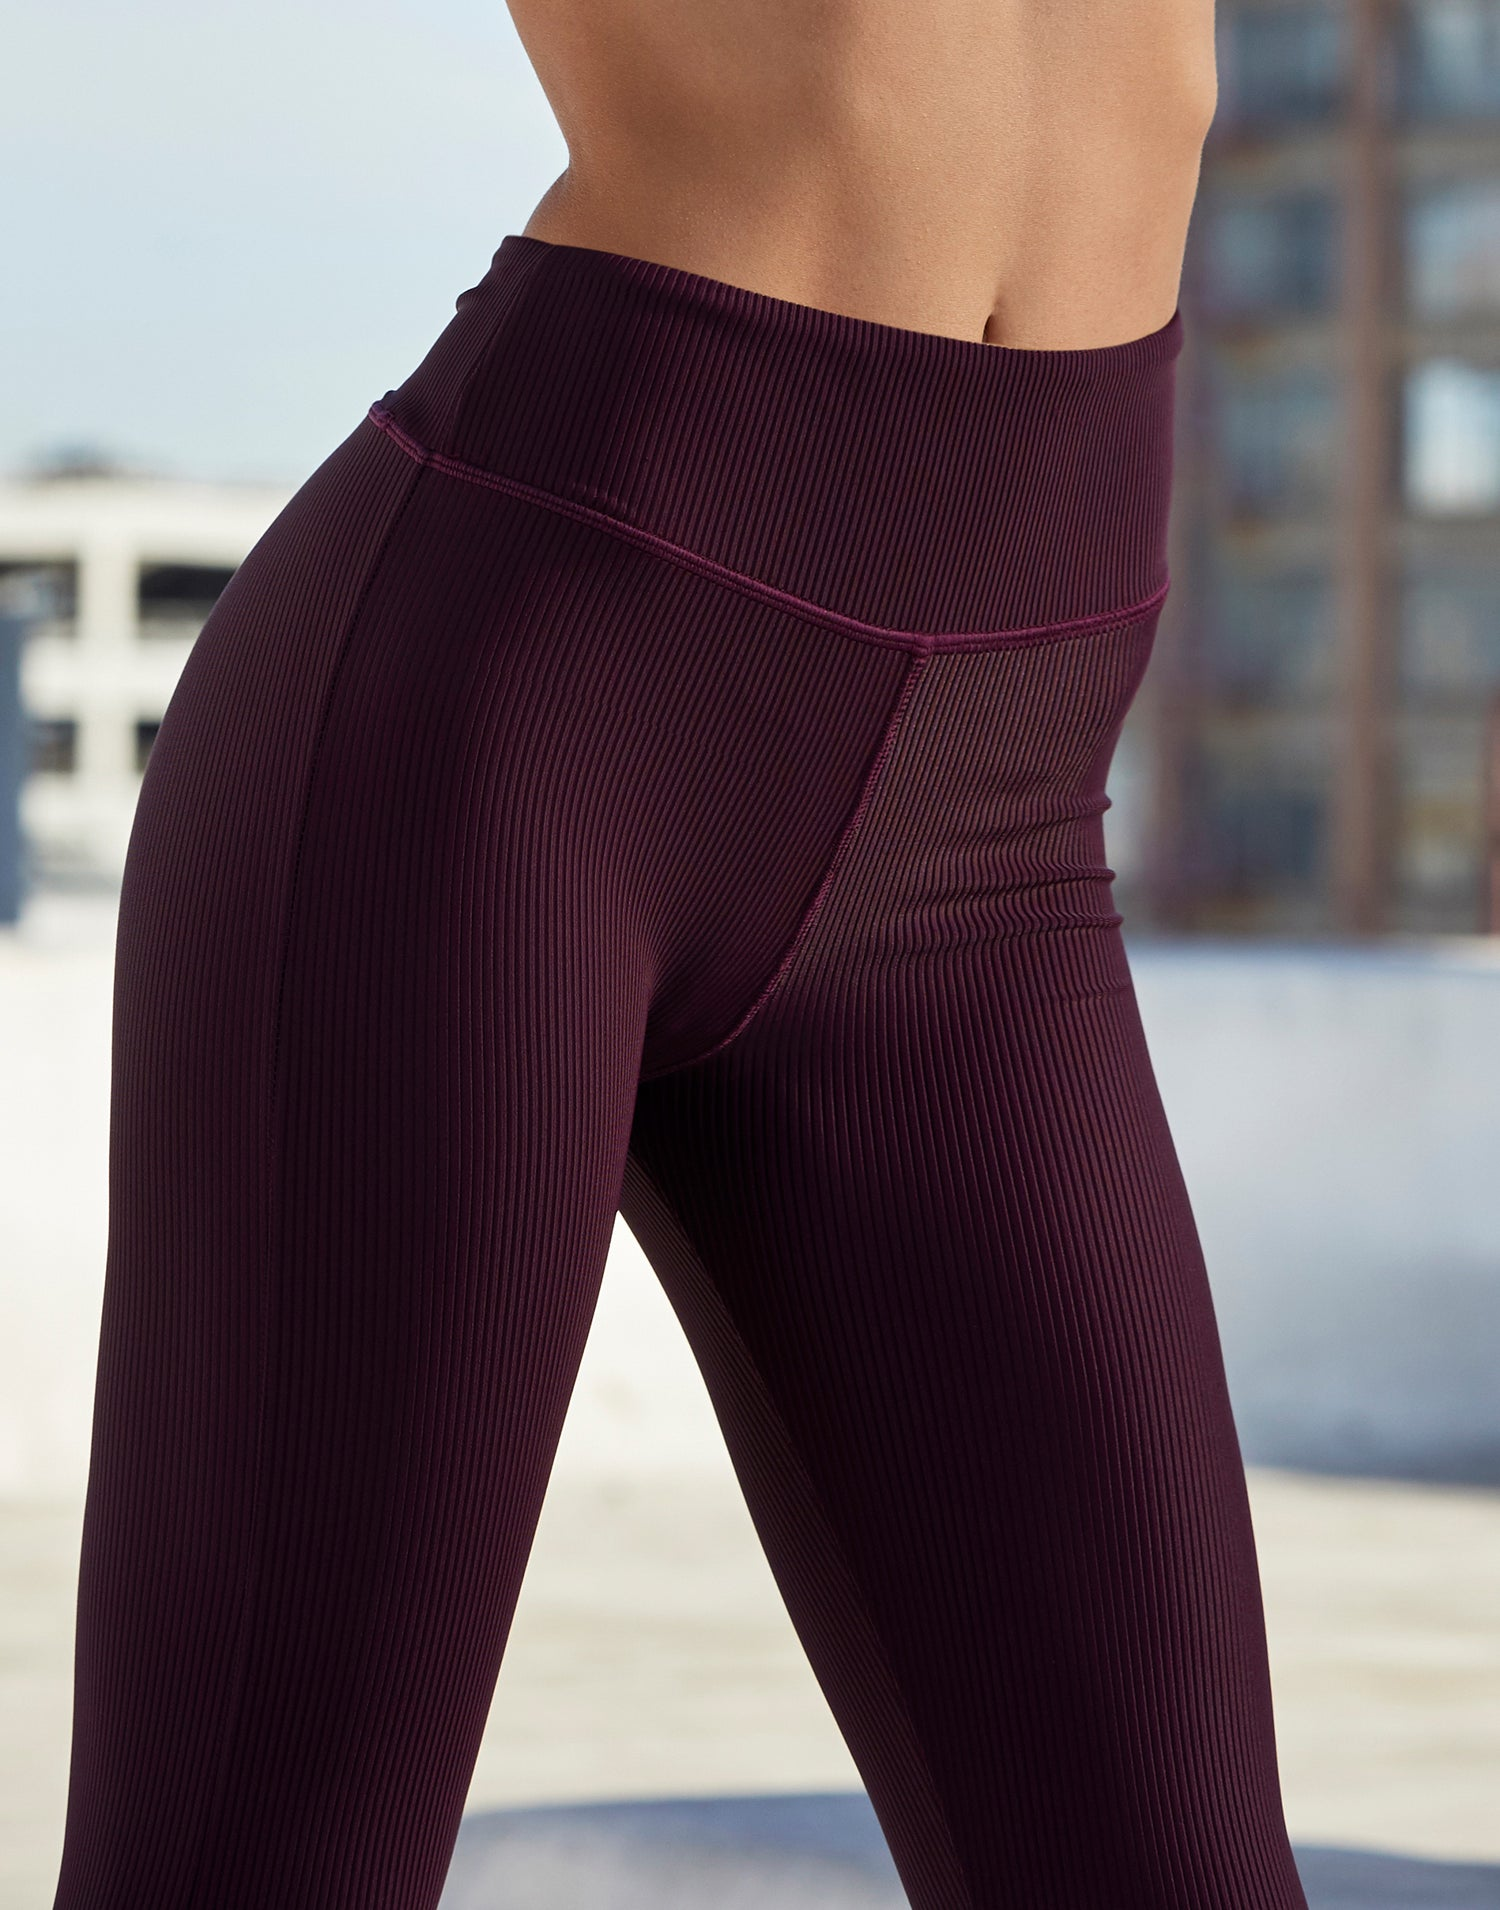 Adult London Legging in Eggplant Rib - alternate front detail view